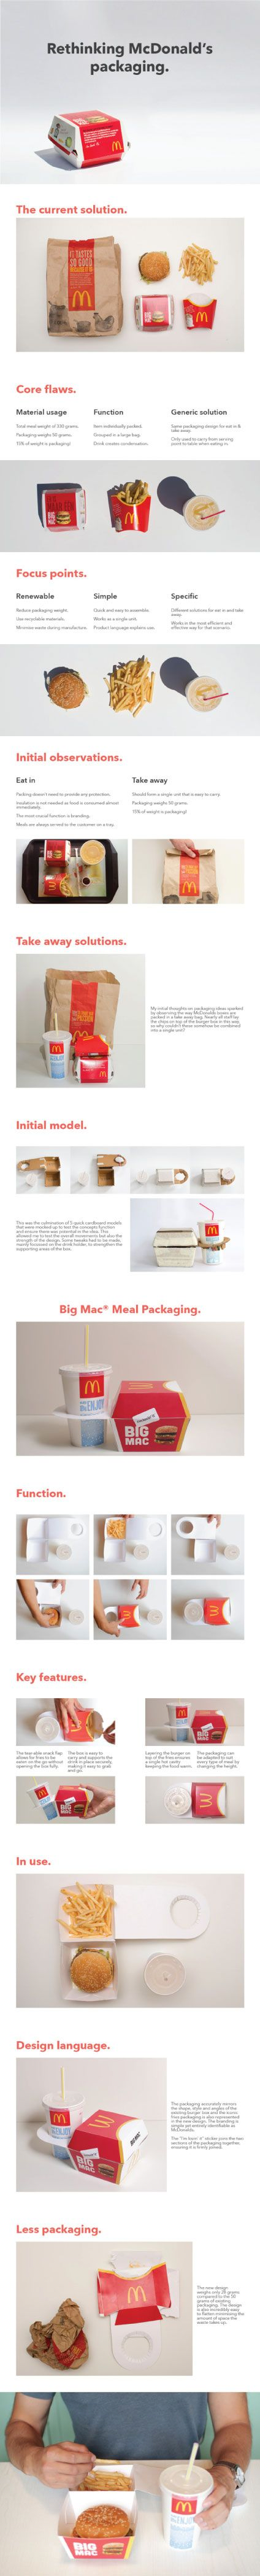 McDonald's Packaging Redesign by  Amit Sakal